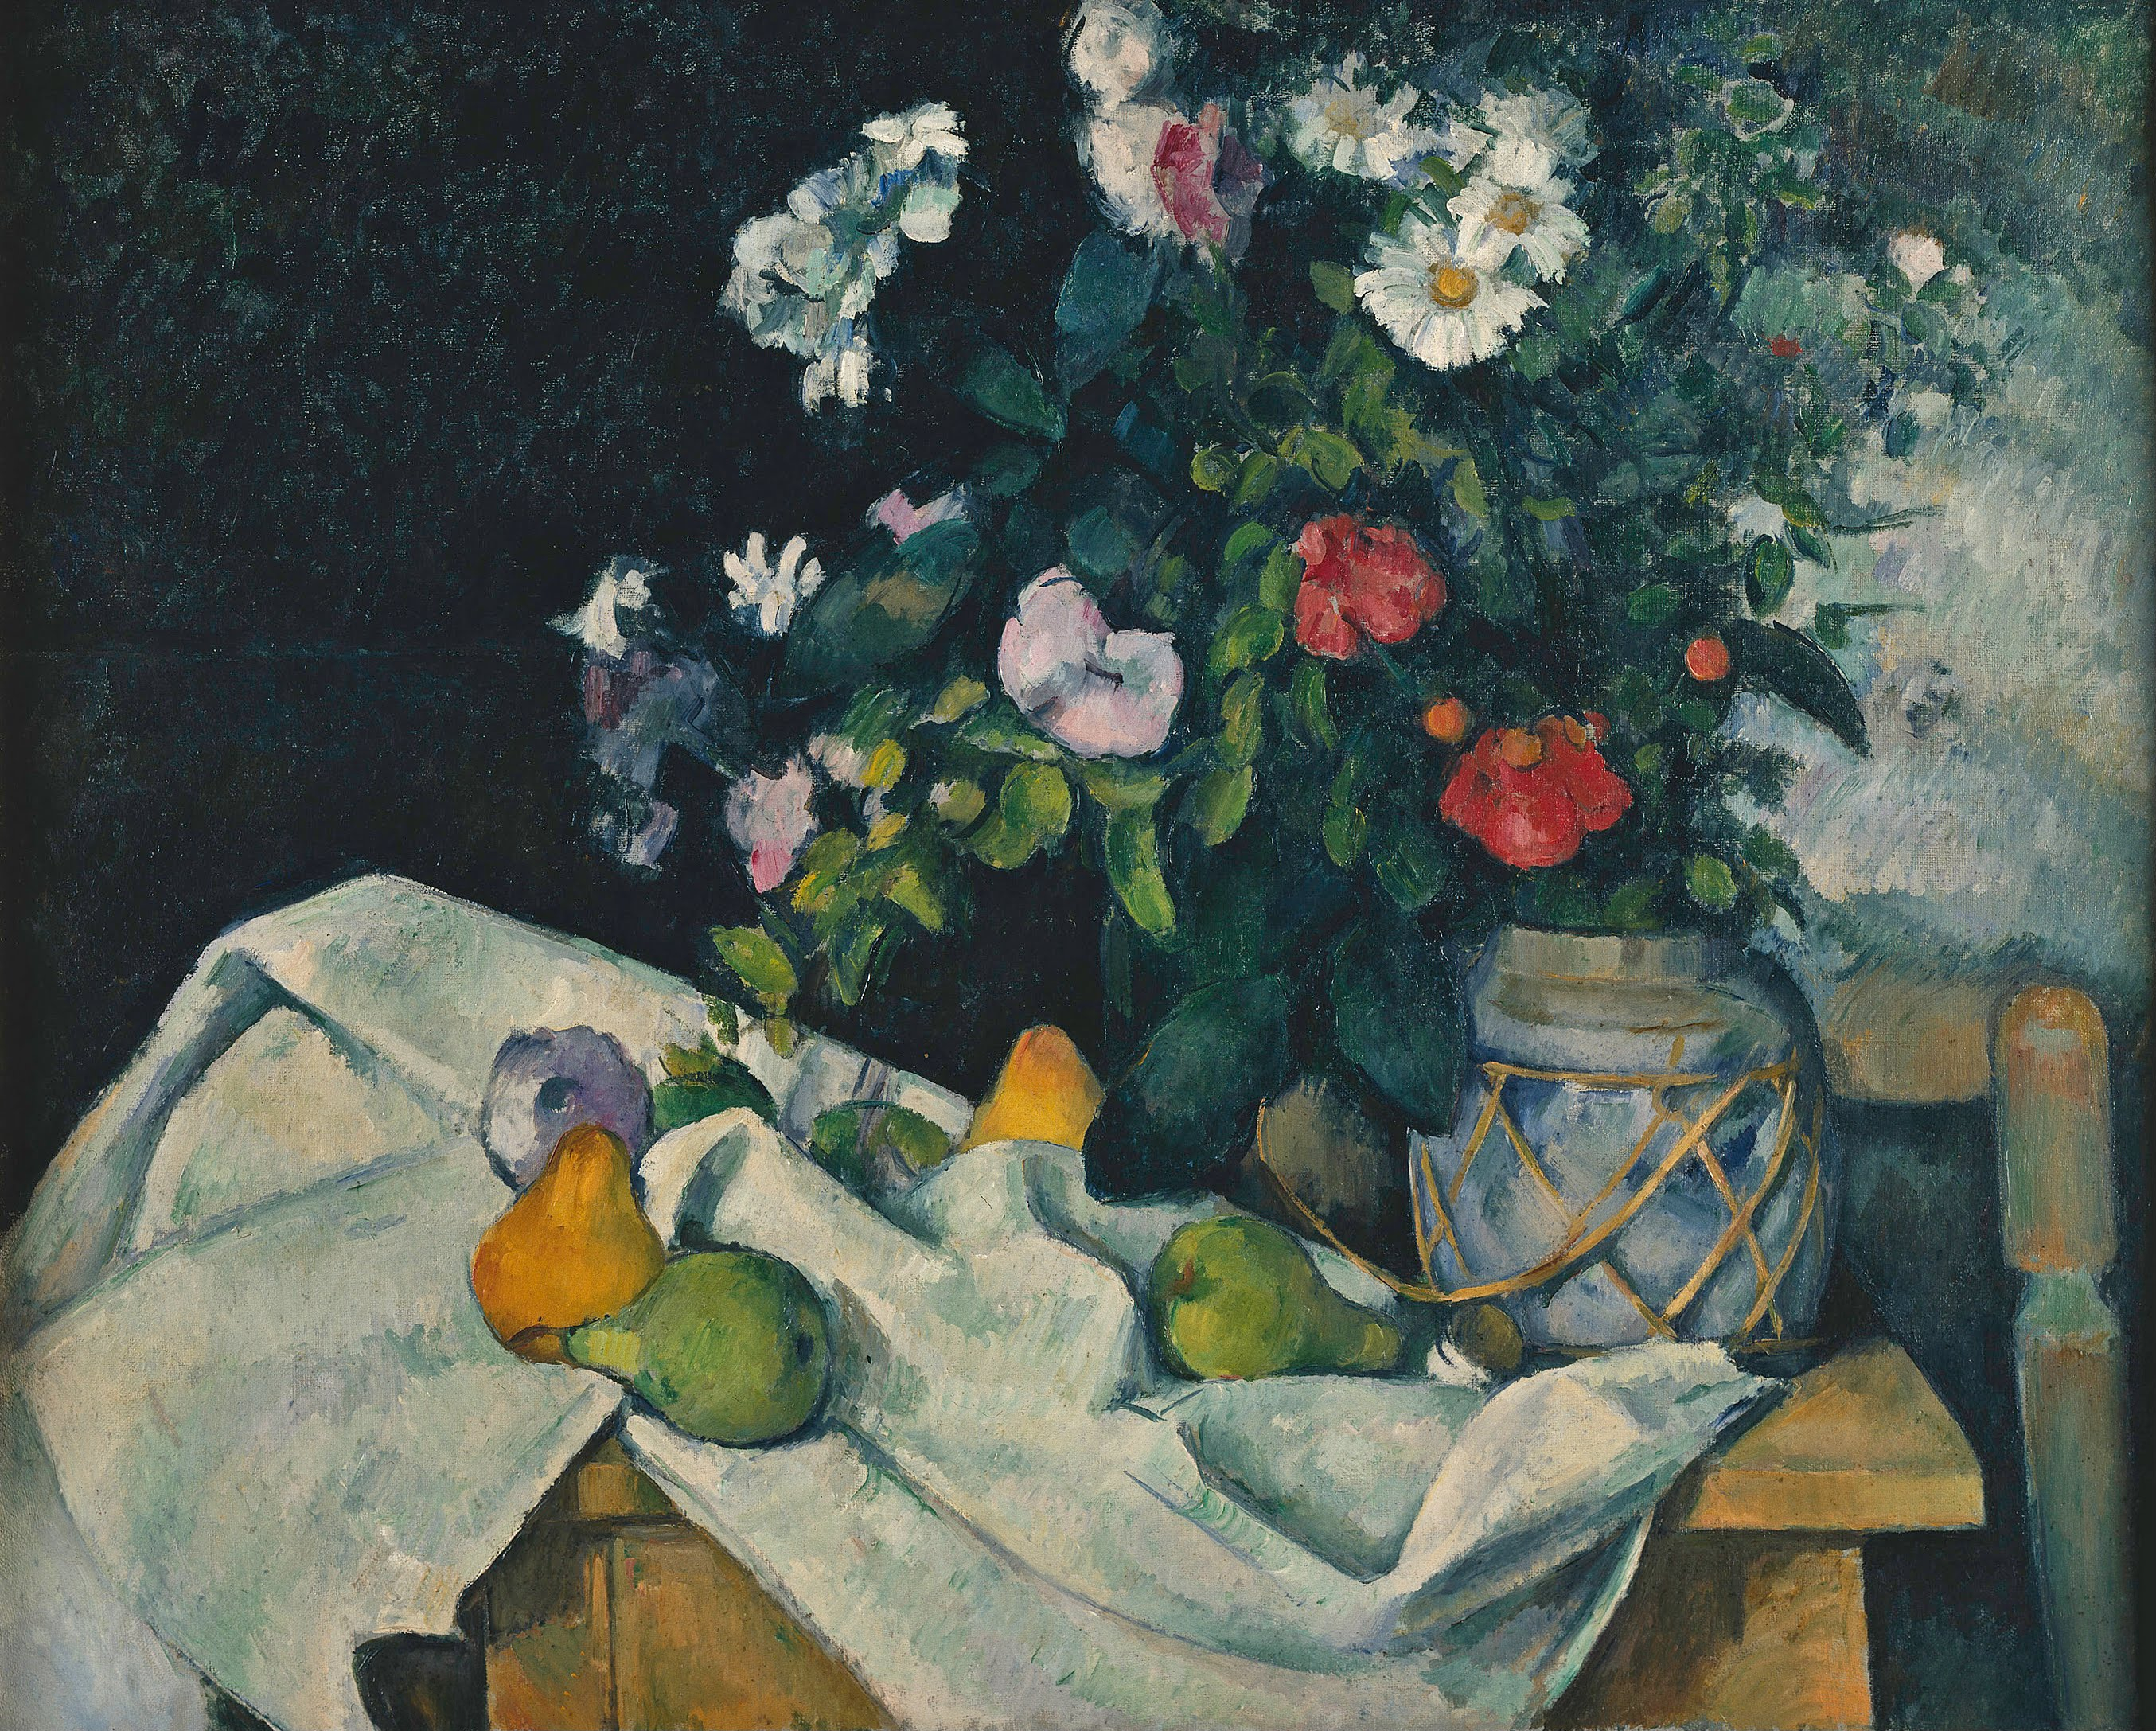 Un Pot De Fleur Datei Paul Cézanne Fleurs Dans Un Pot De Gingembre Et Fruits